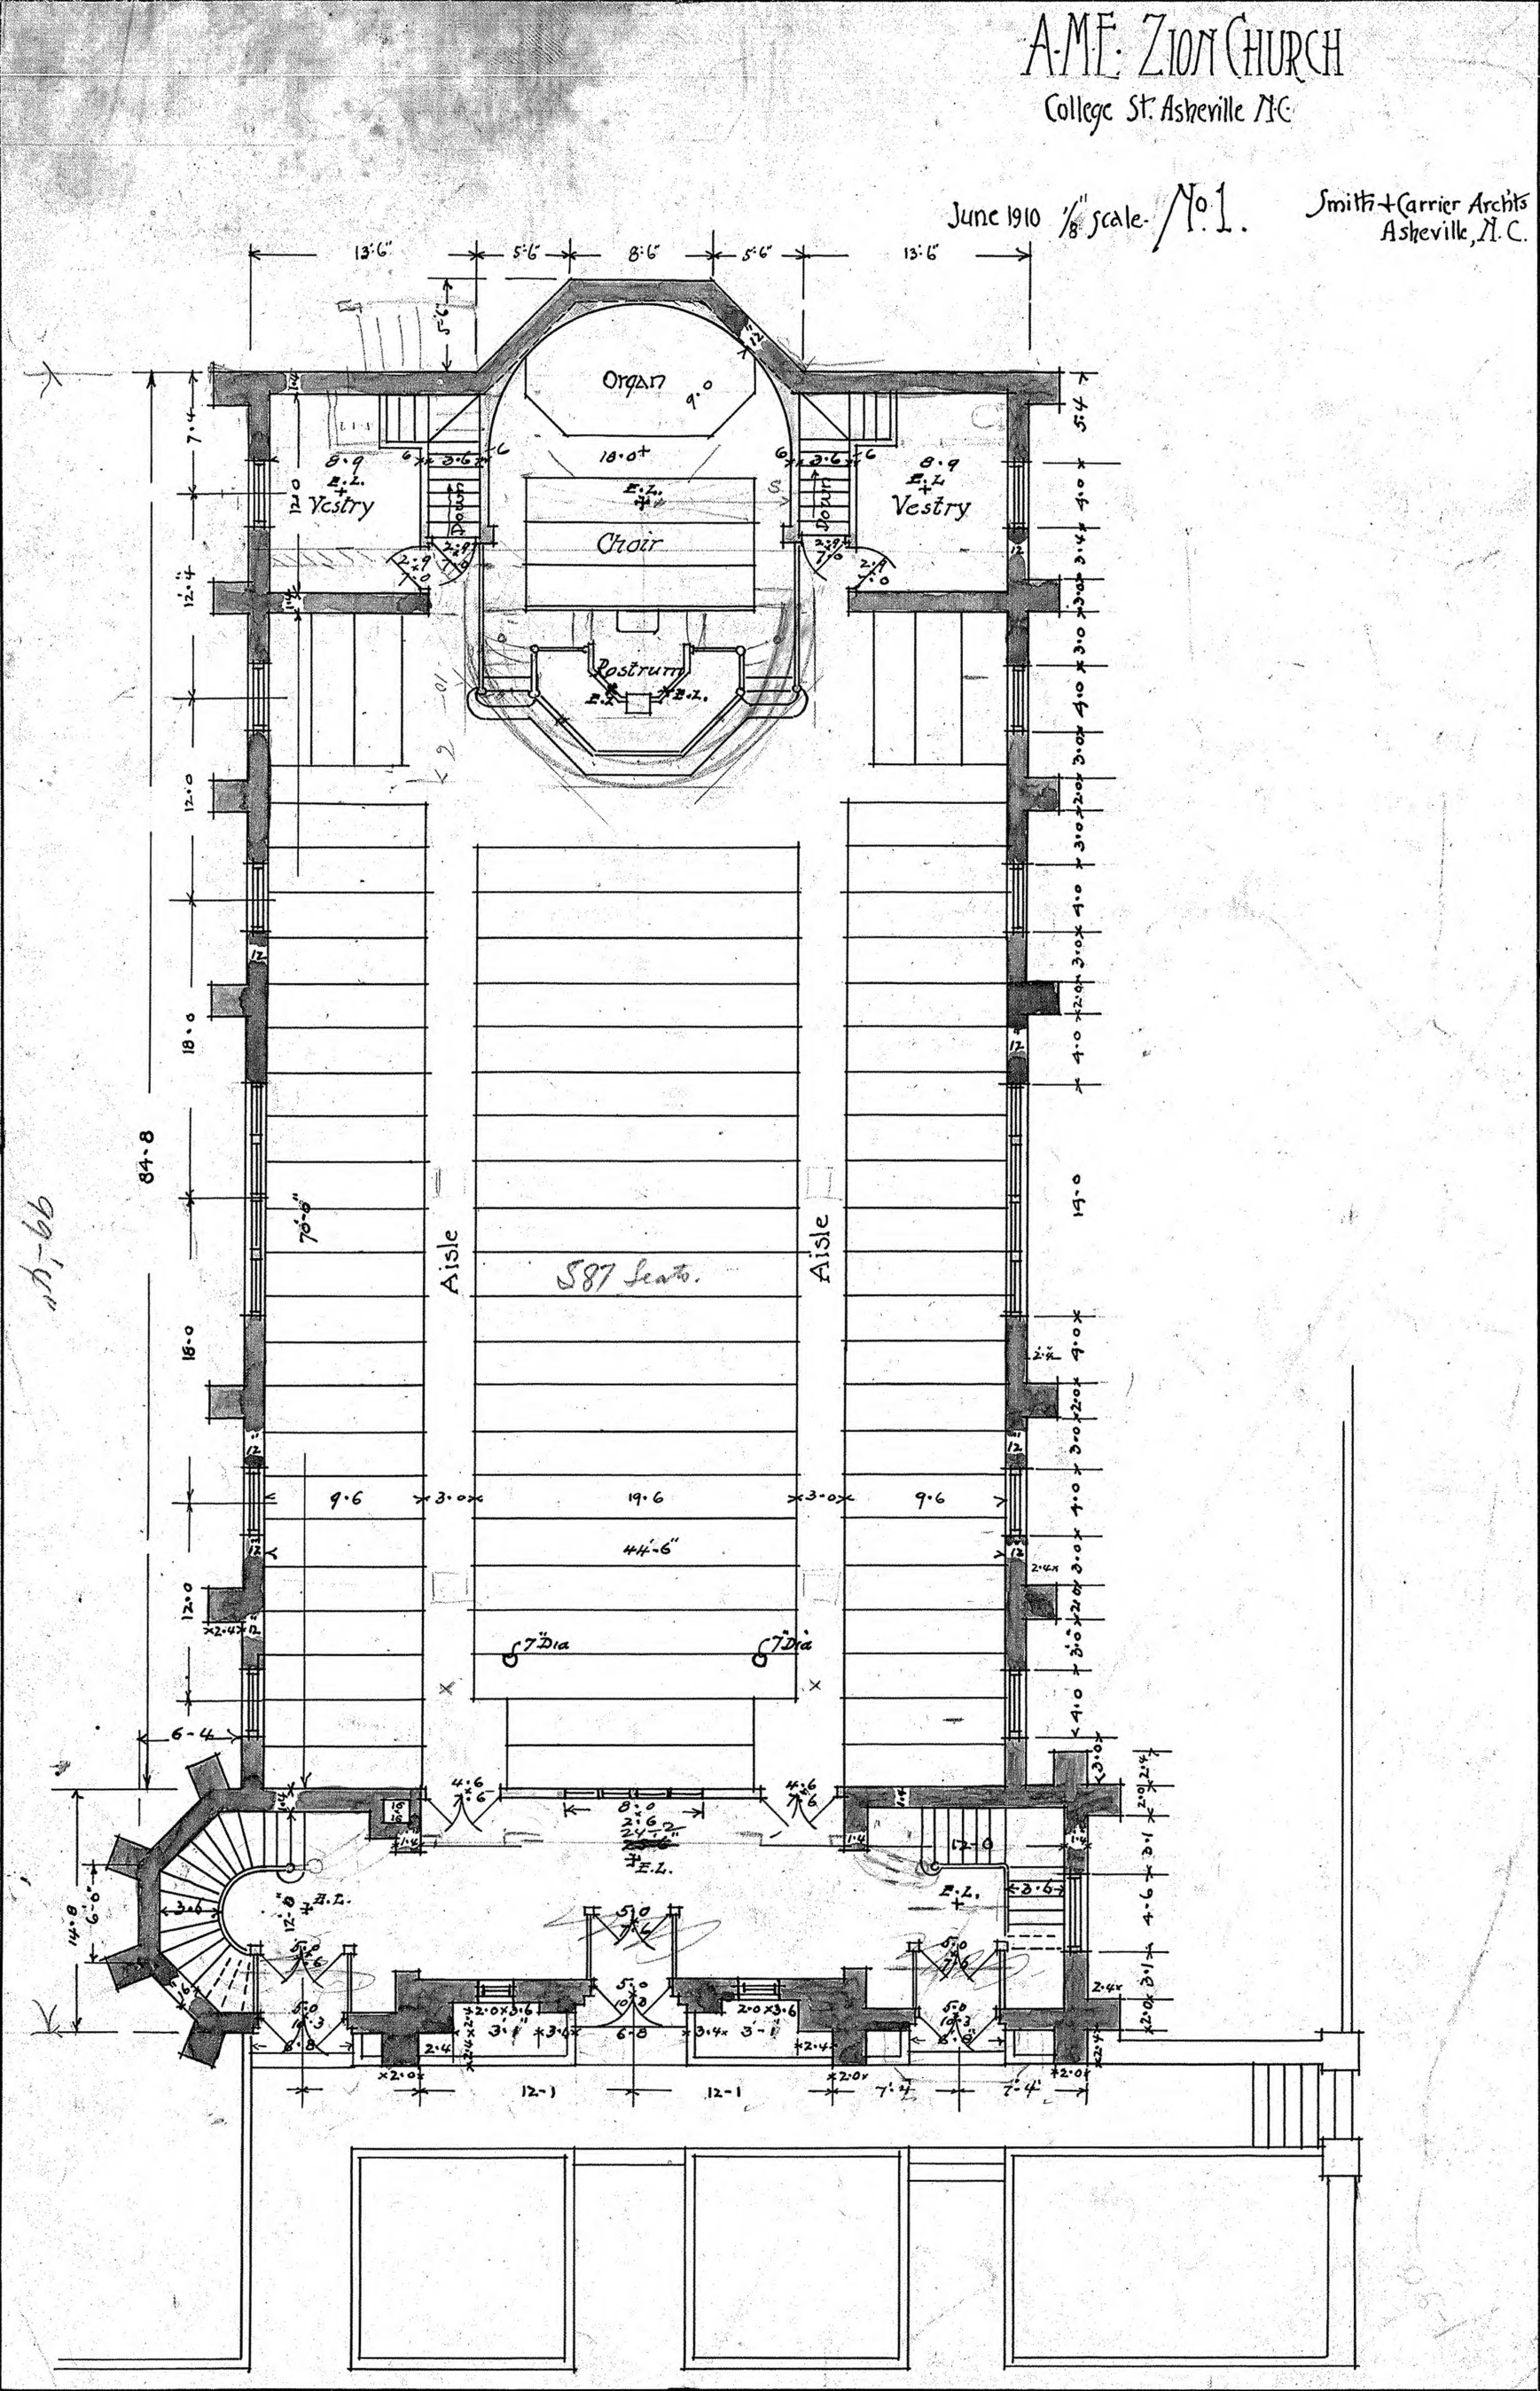 AME Zion Church-- Floor Plan - No. 1